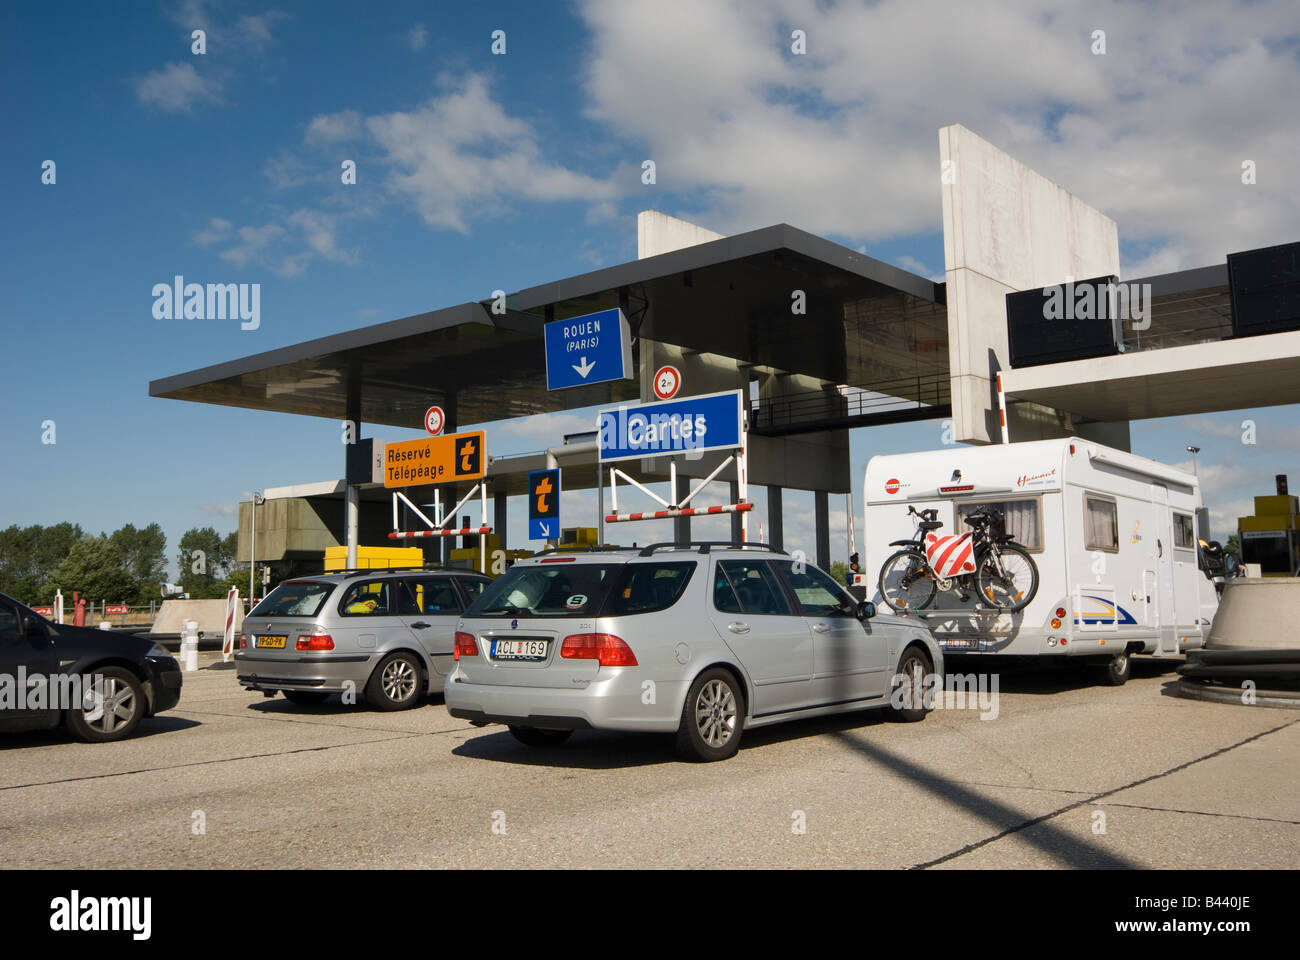 Traffic at a toll booth on the A13 in Normandy Péage A13 Autoroute de Normandie, France - Stock Image